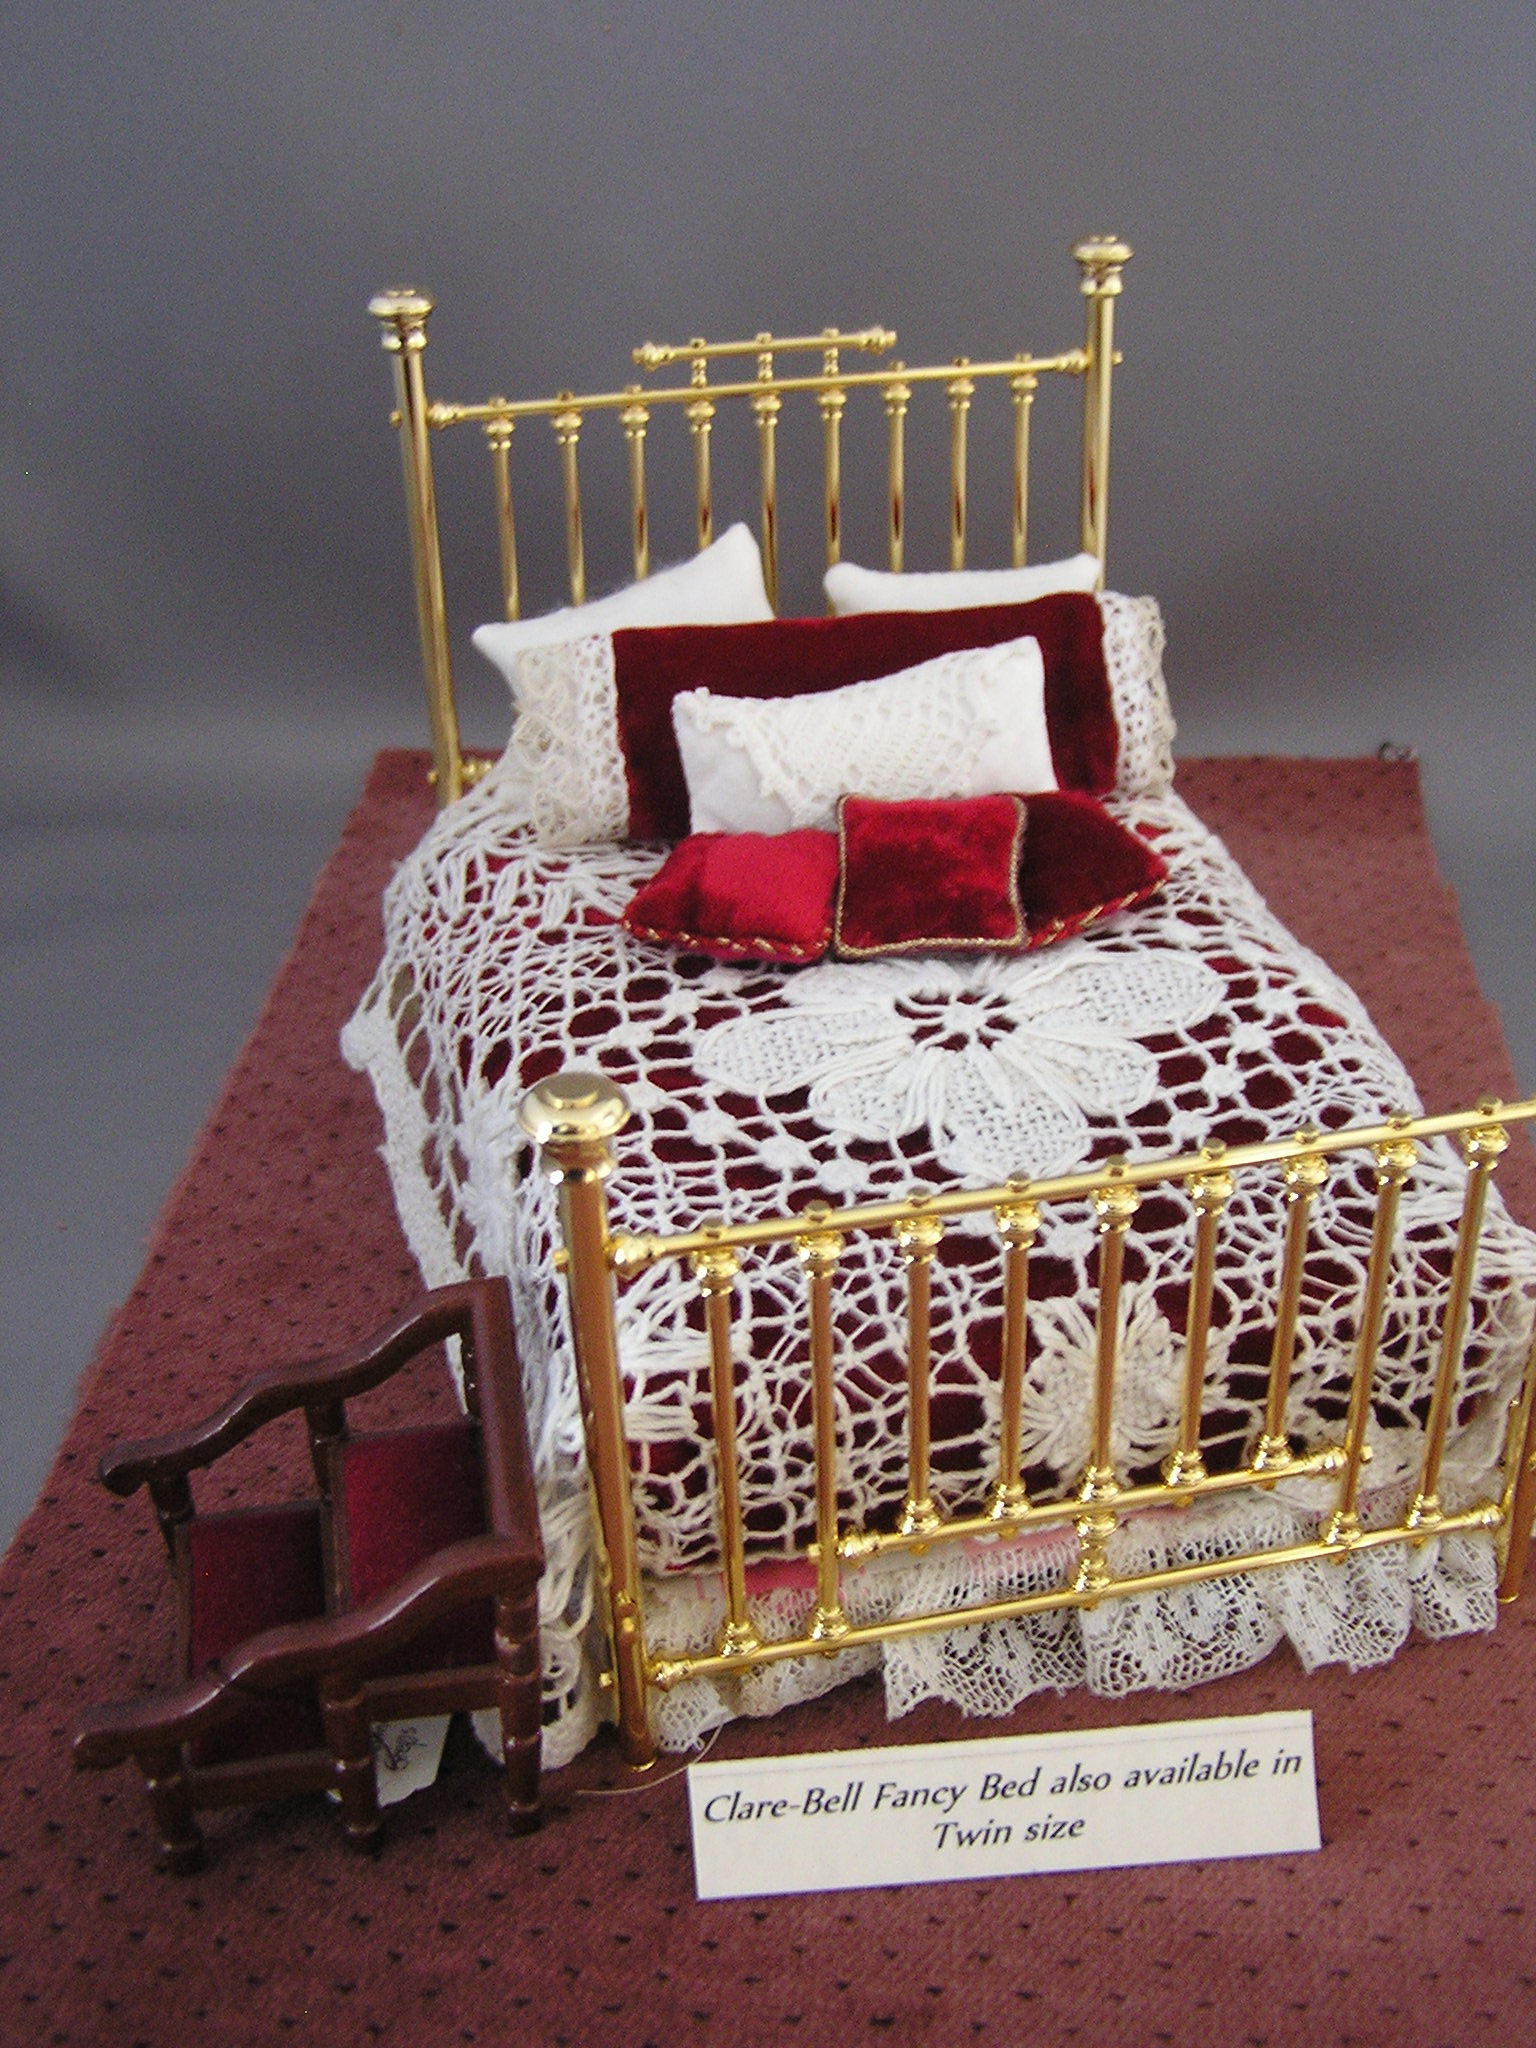 mattress for clare bell brass beds click to enlarge